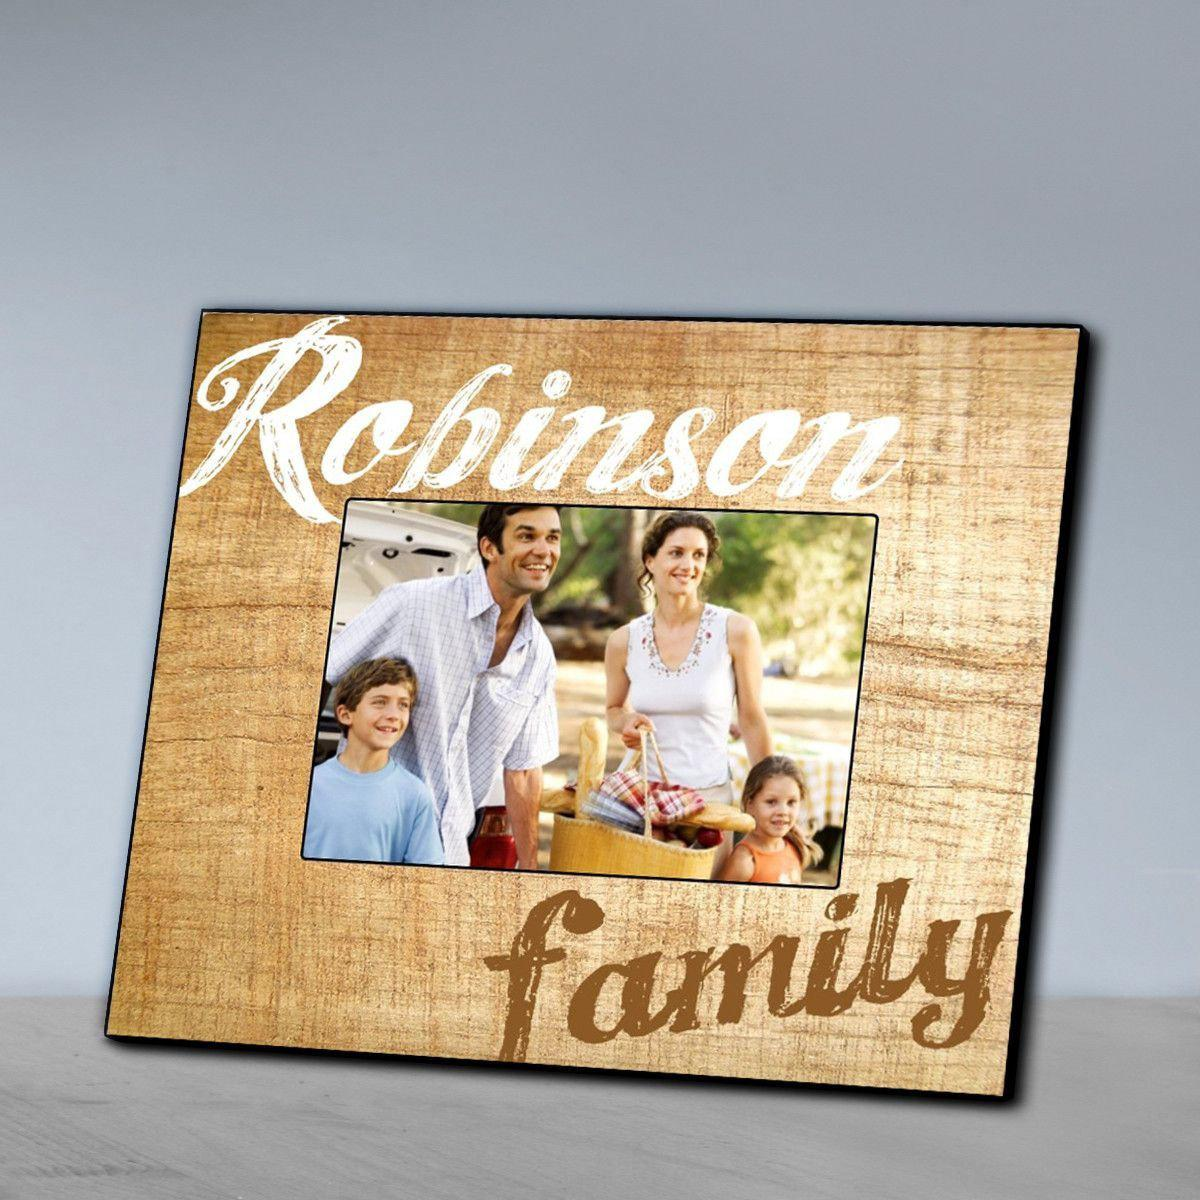 Personalized-Family-Wood-Grain-Picture-Frame